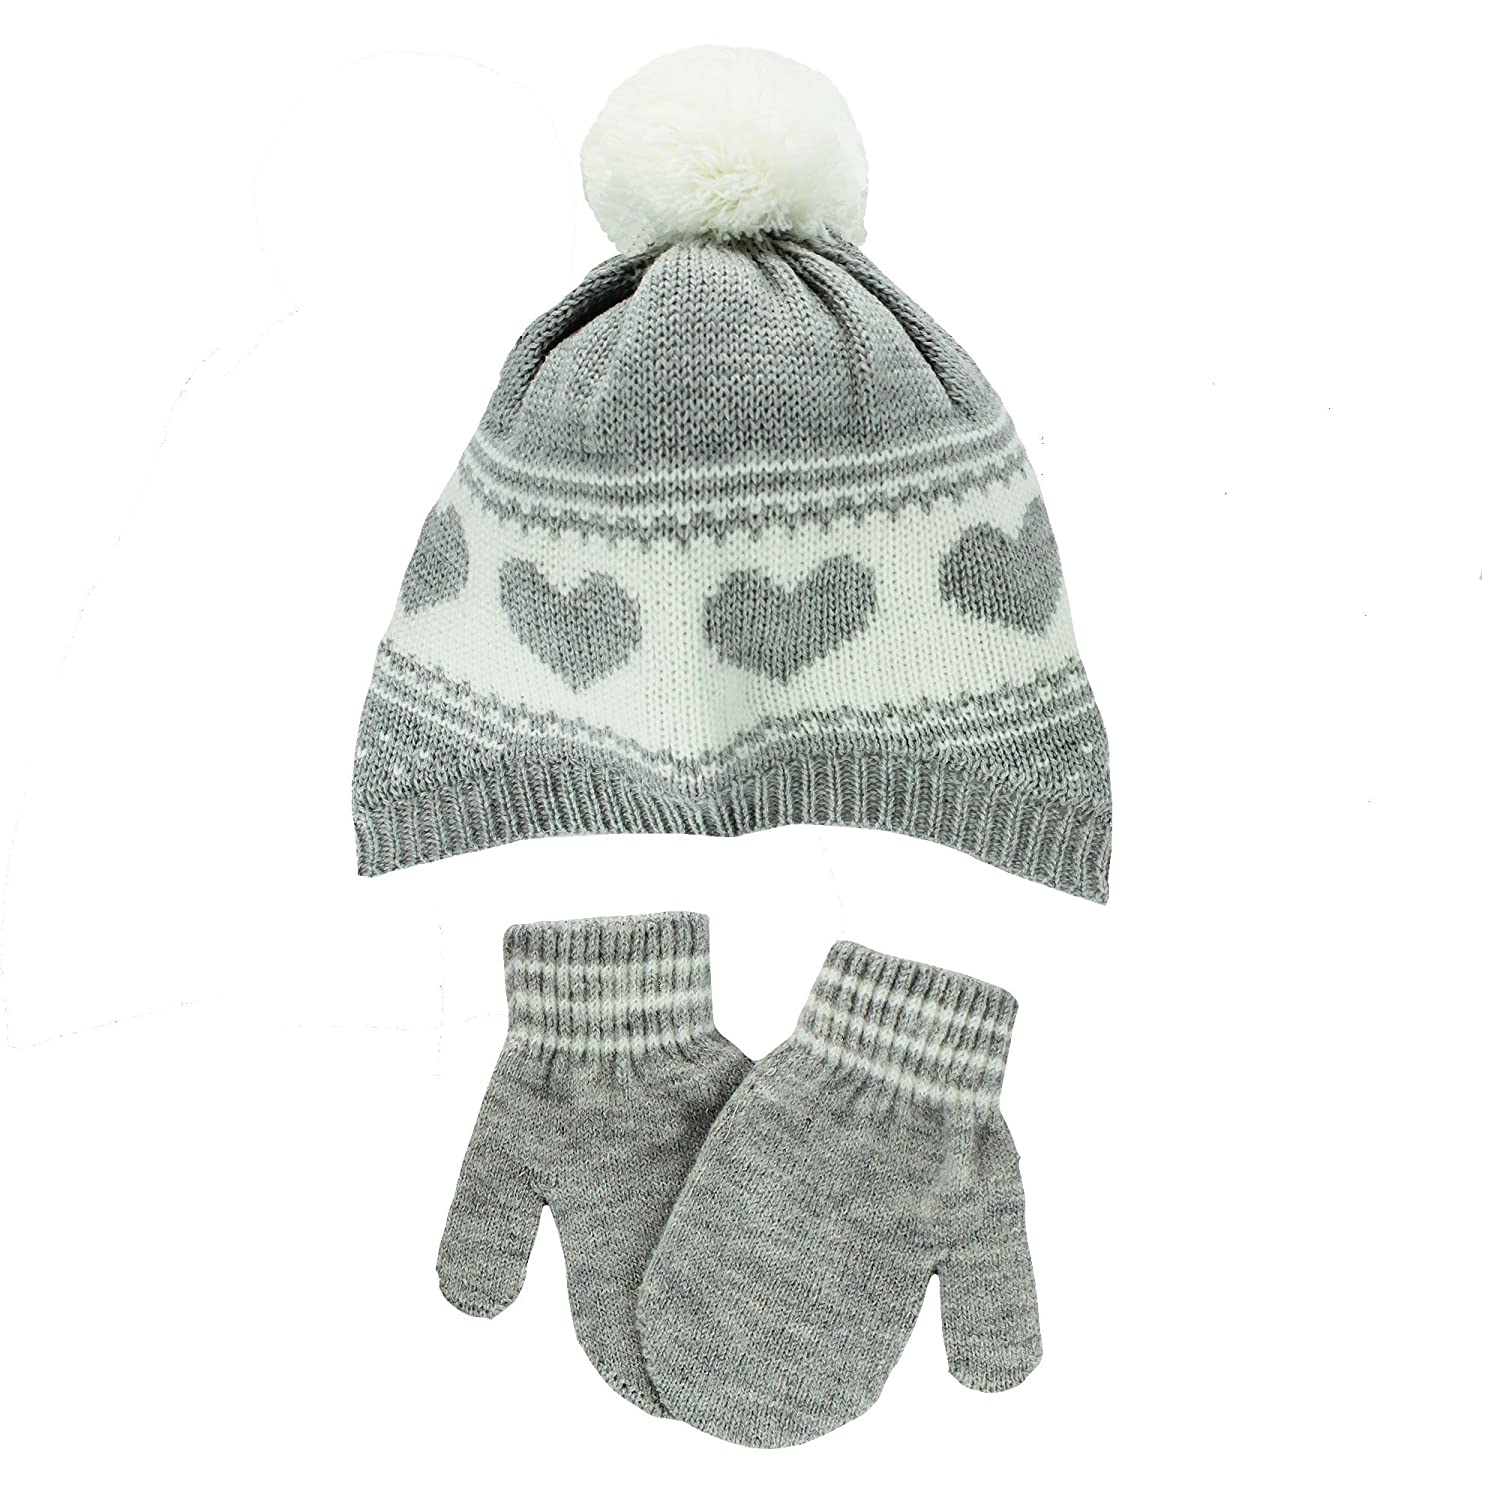 d4bd8496e43 Amazon.com  Carter s Toddler Girls Knit Winter Ski Beanie Hat and Mittens  2T-4T Grey  Baby